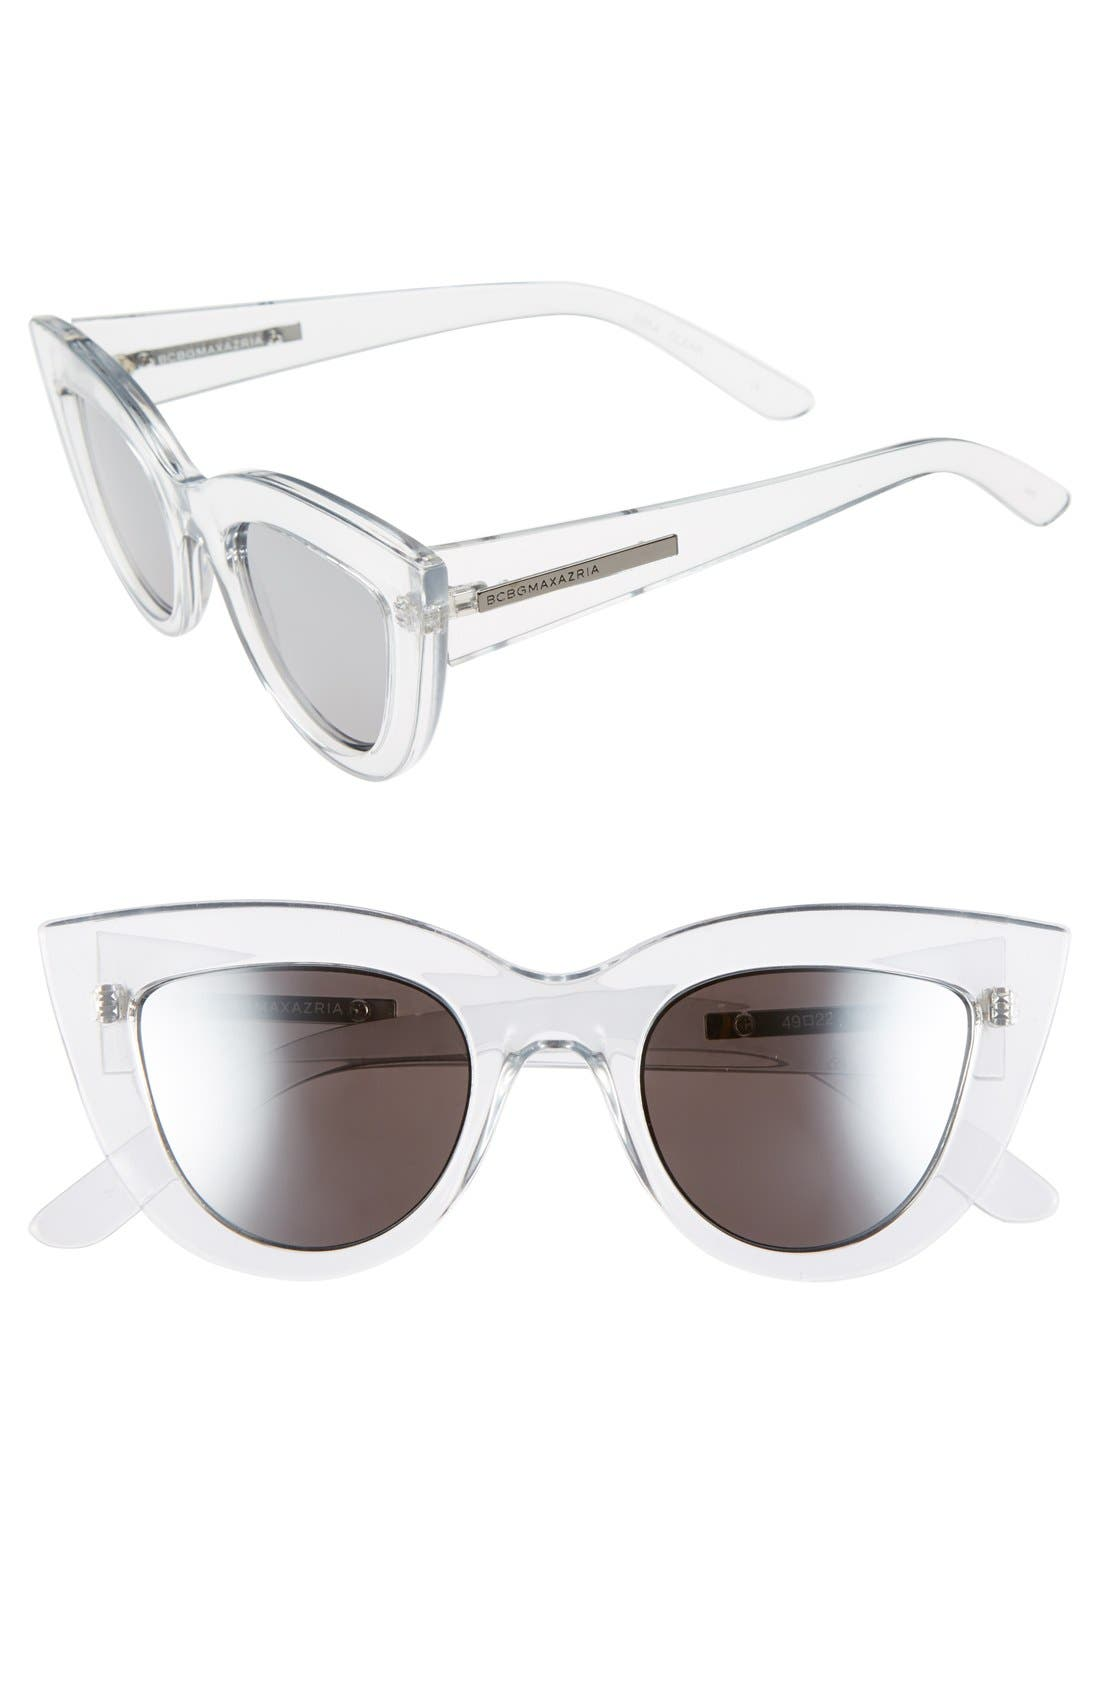 Main Image - BCBGMAXAZRIA 49mm Cat Eye Sunglasses